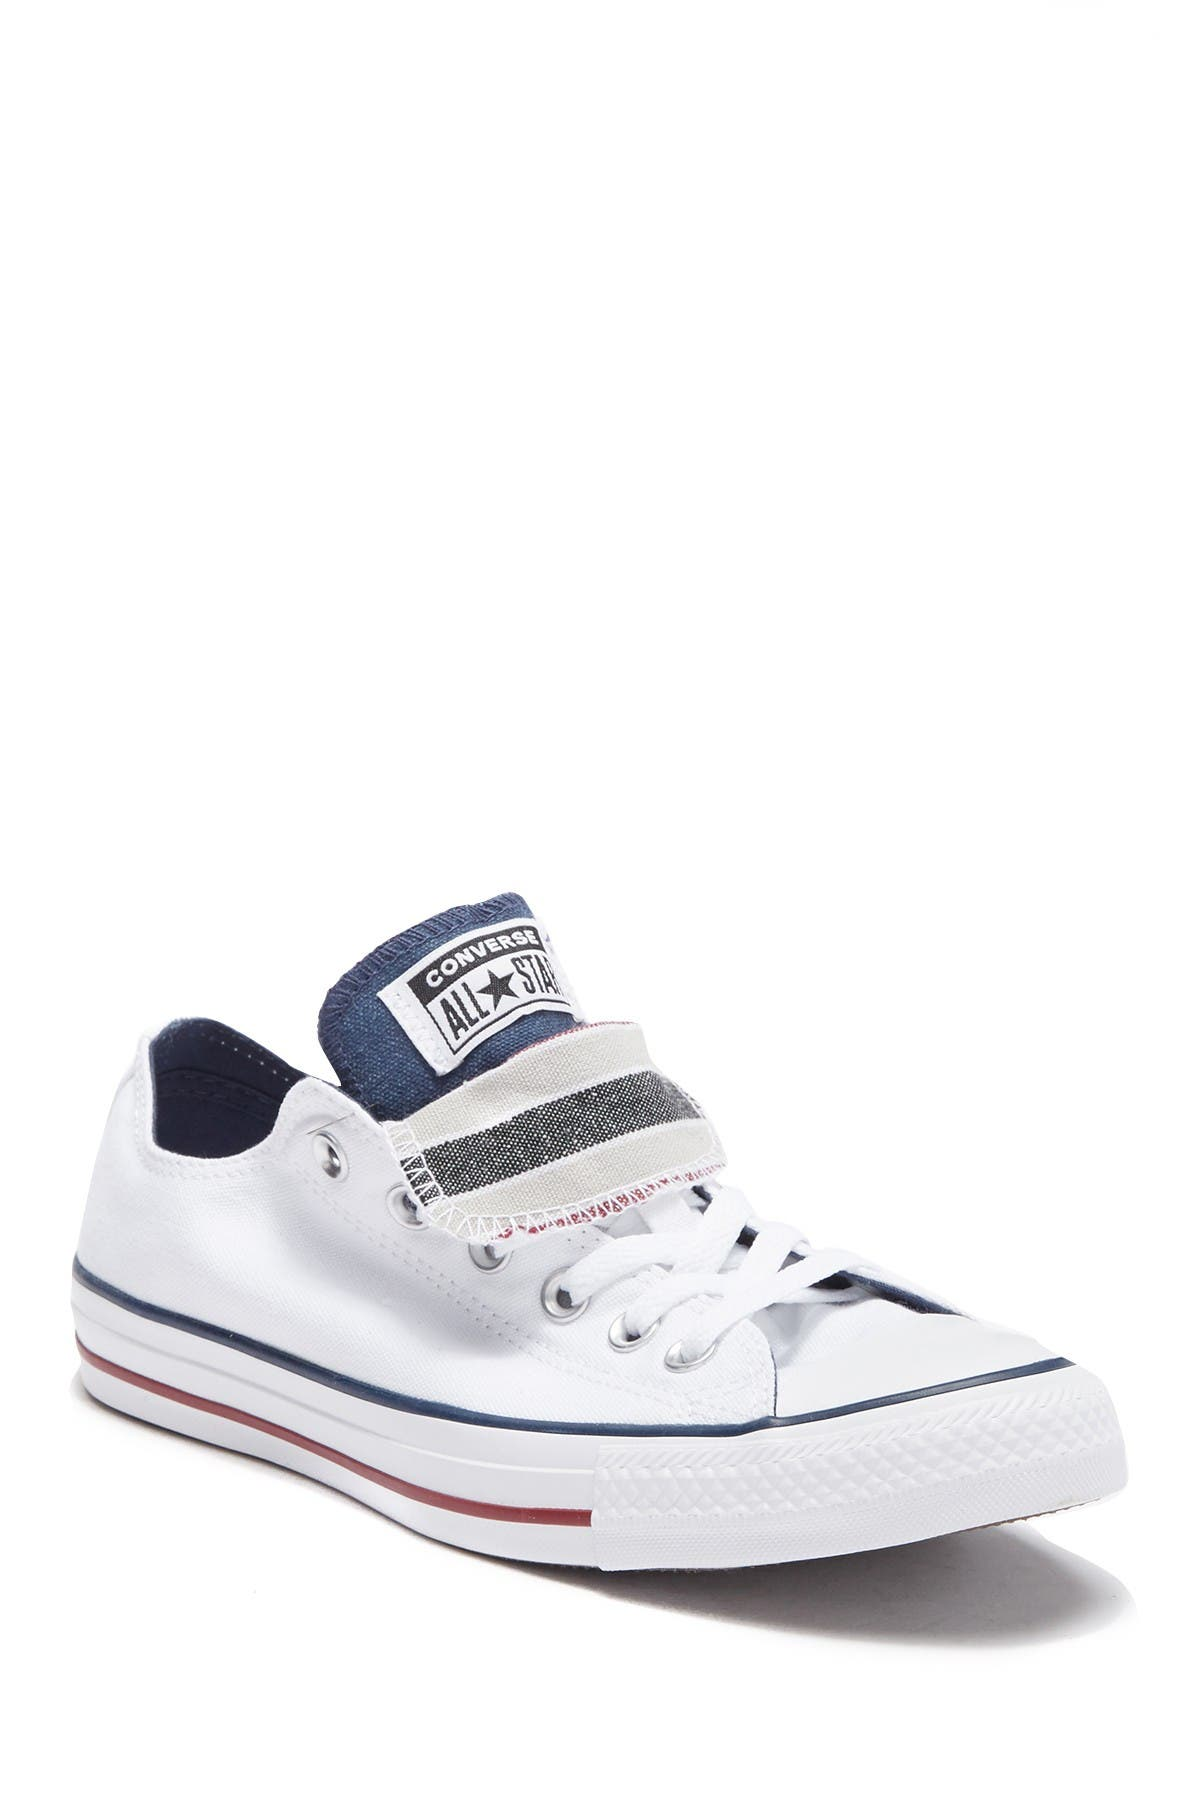 Image of Converse Chuck Taylor All-Star Double-Tongue Sneaker